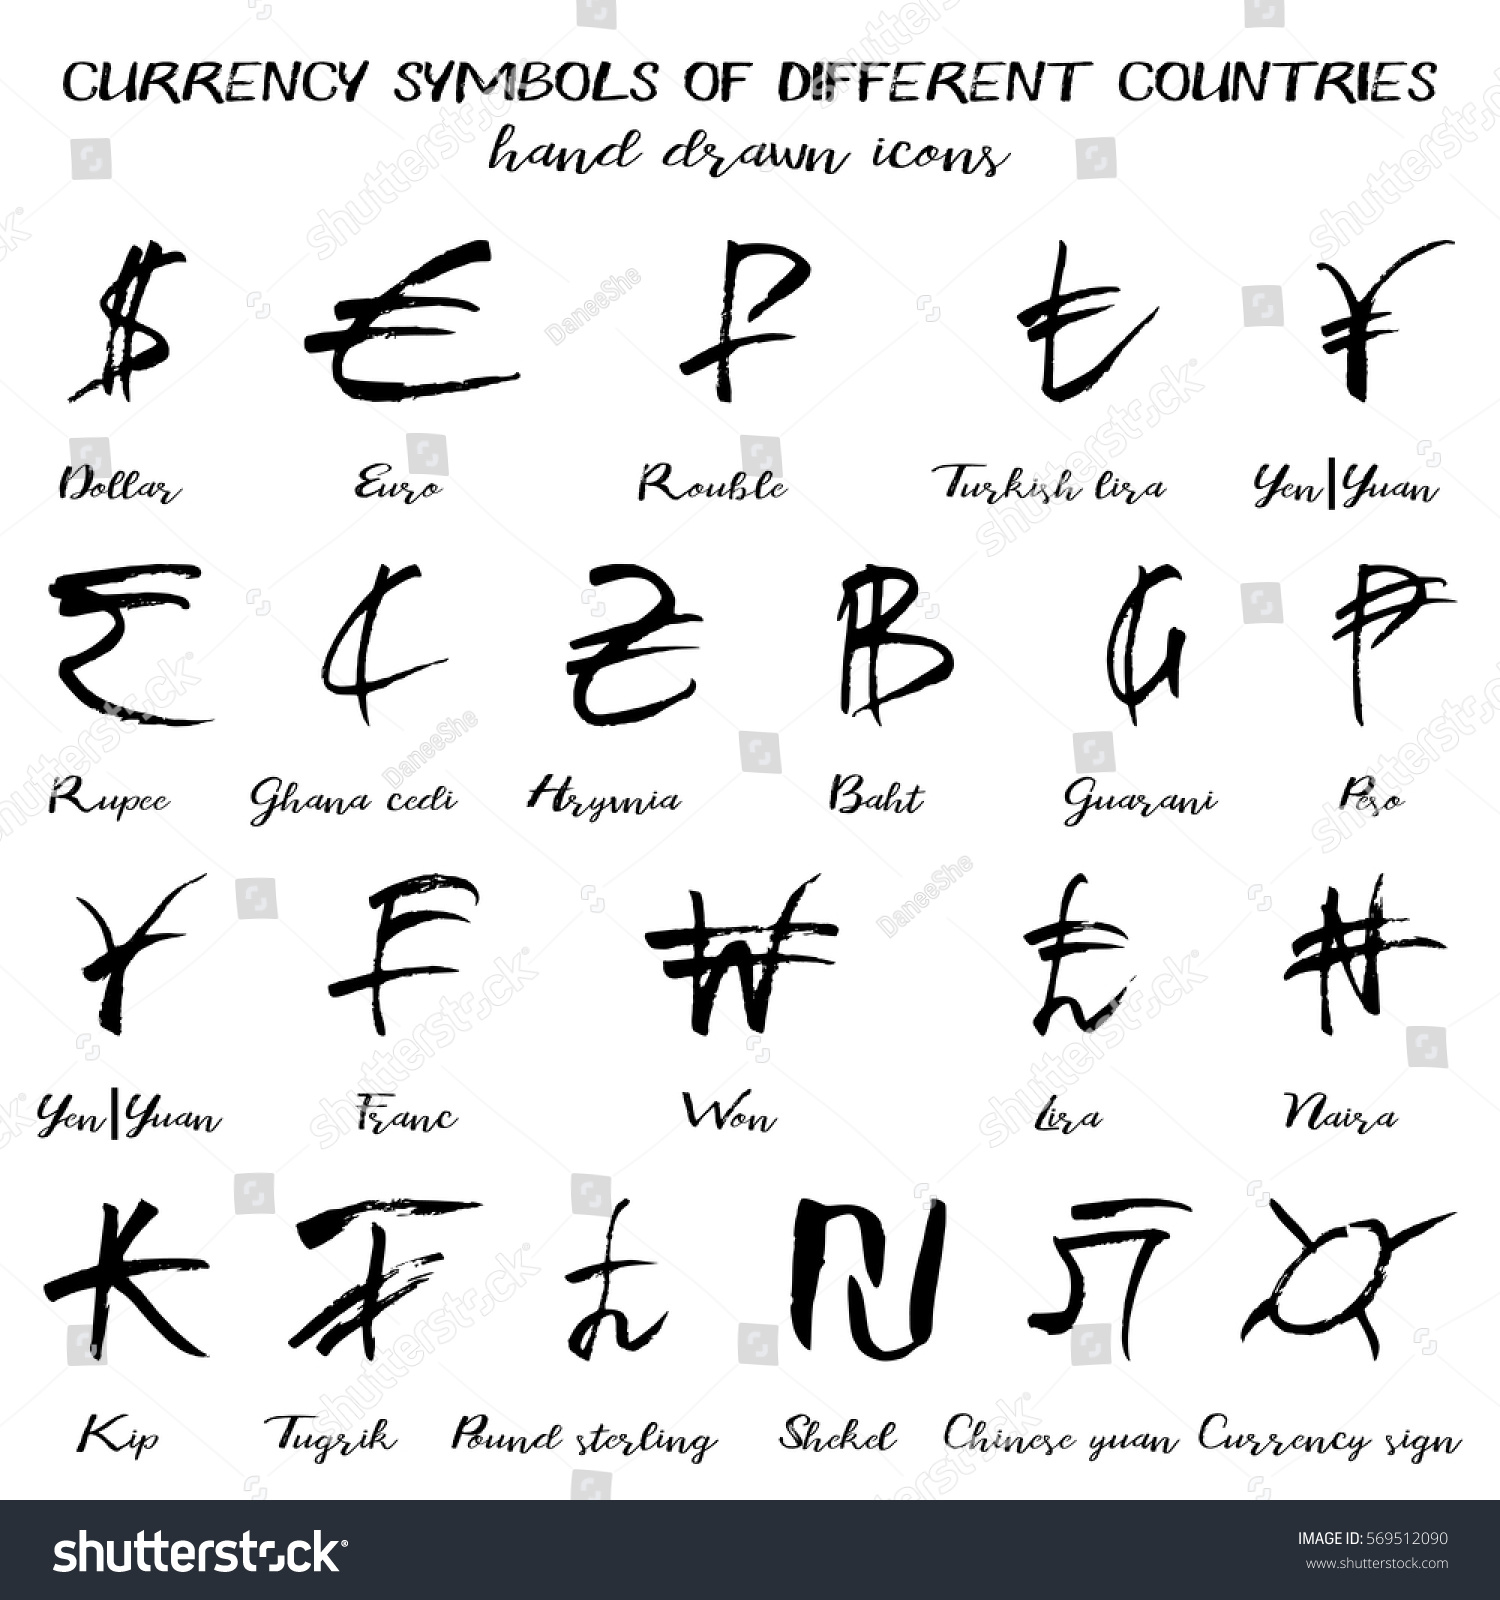 Set currency symbols world hand drawn stock vector 569512090 set of currency symbols of world in hand drawn technique and grunge style isolated on white biocorpaavc Image collections